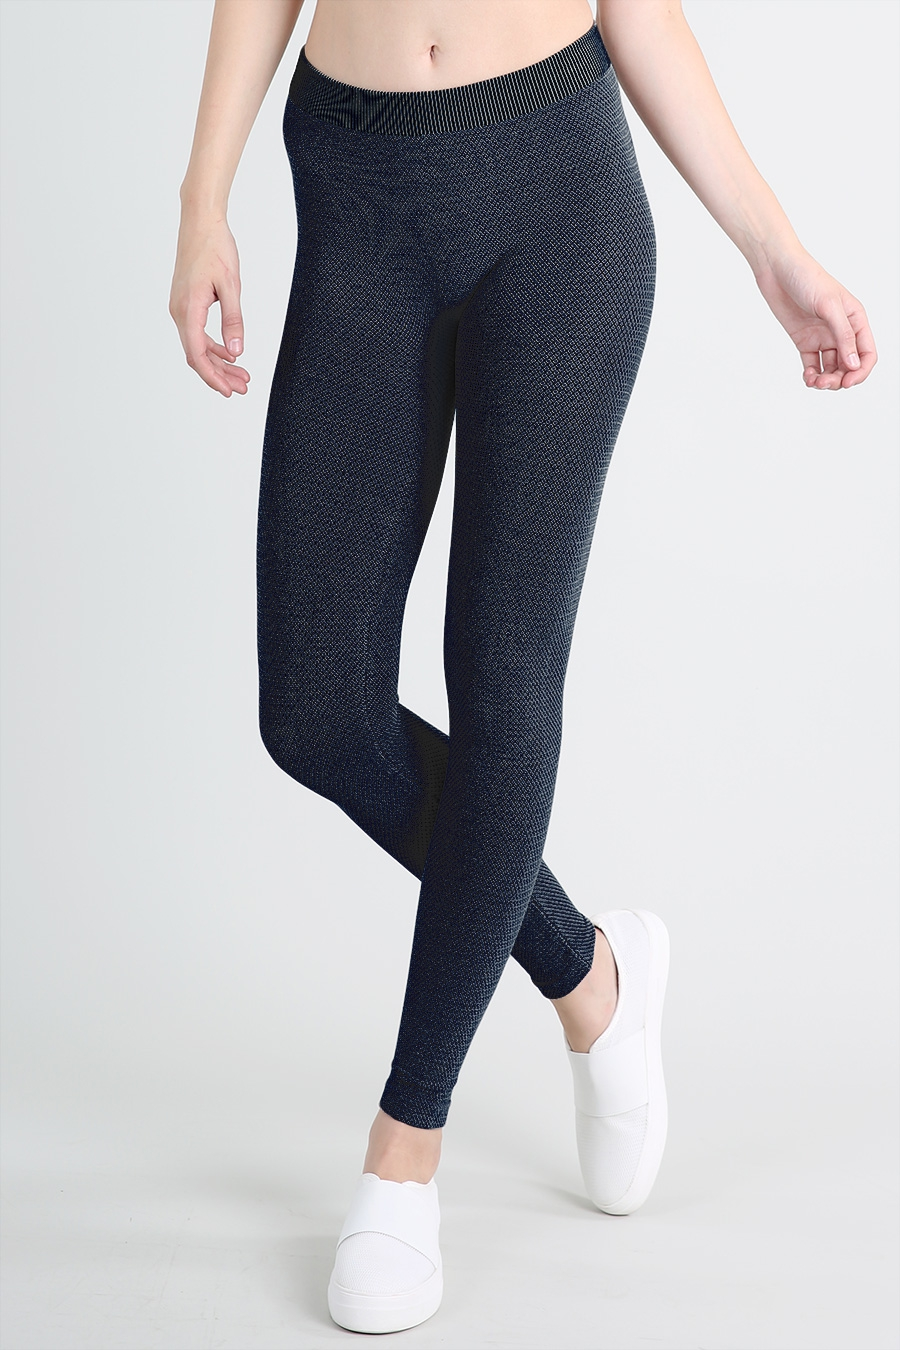 Baby Diamond Knit Leggings - orangeshine.com